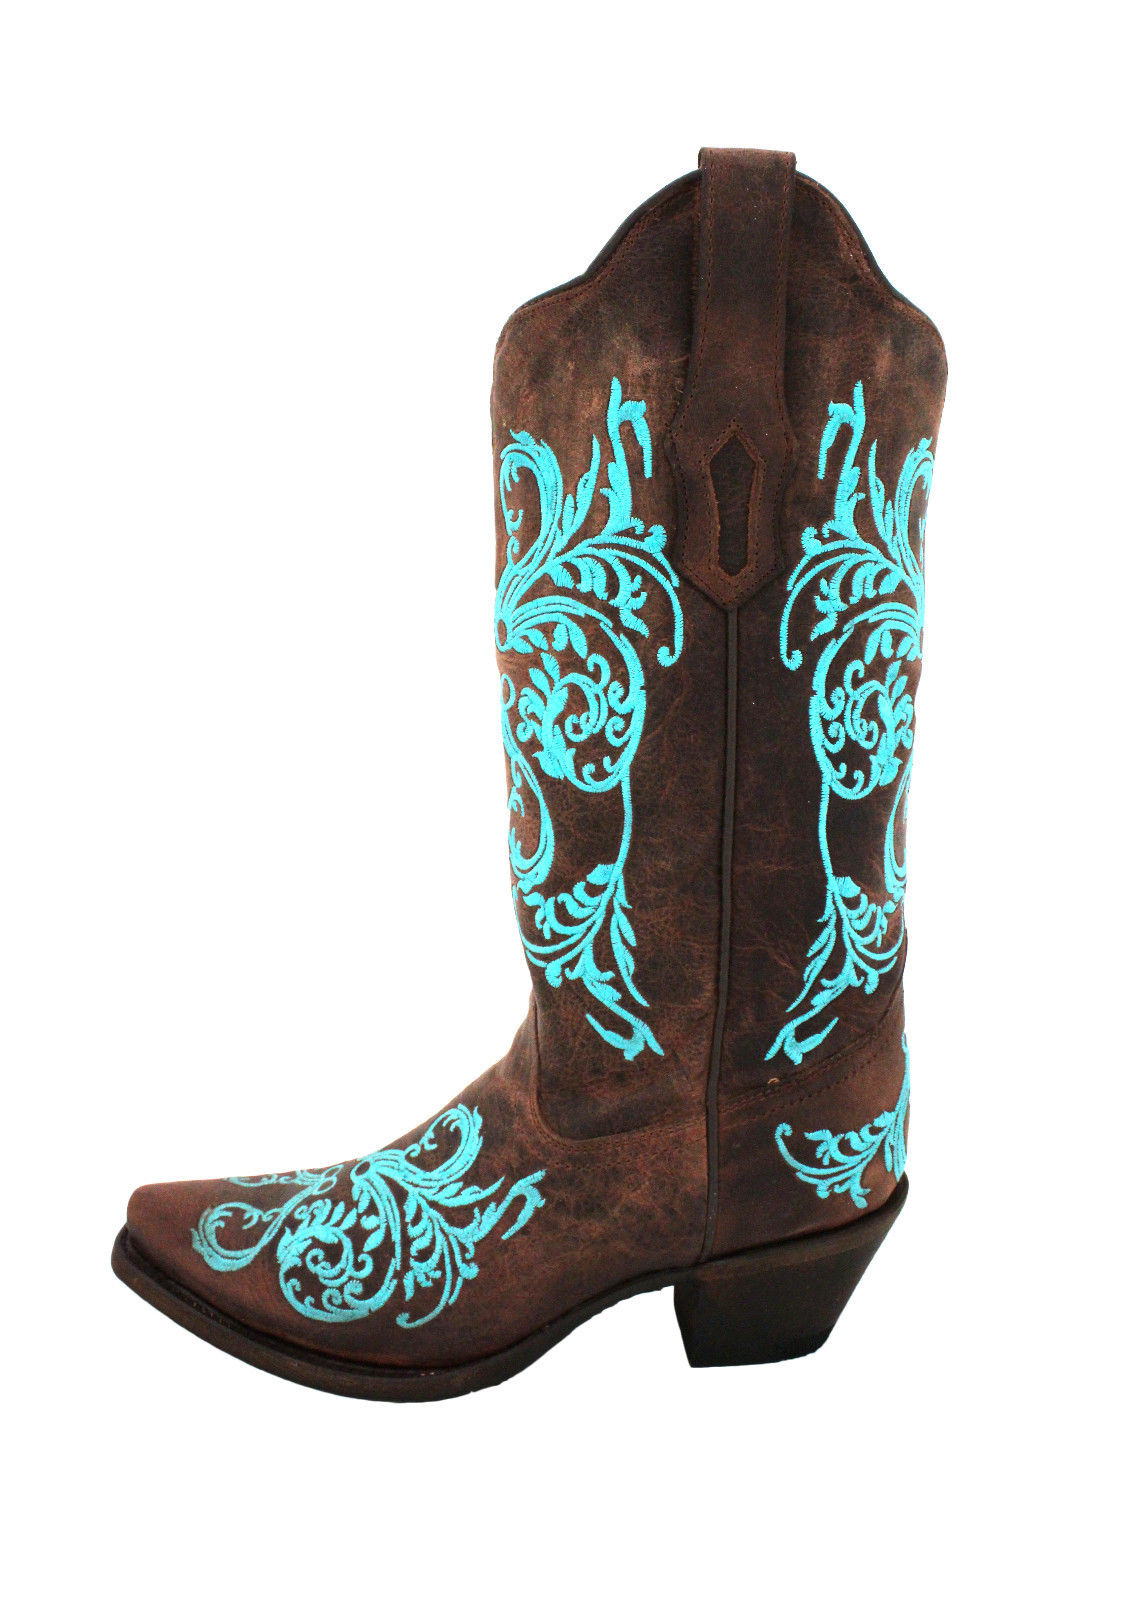 Unique Who Doesnt Love A Good Cowboy Boot? But, If Were Being Totally Honest, They Can Be A Tad Tough To Wear Away From The Country Set These Black Lucchese Boots Will Score You Street Or Is It Corral